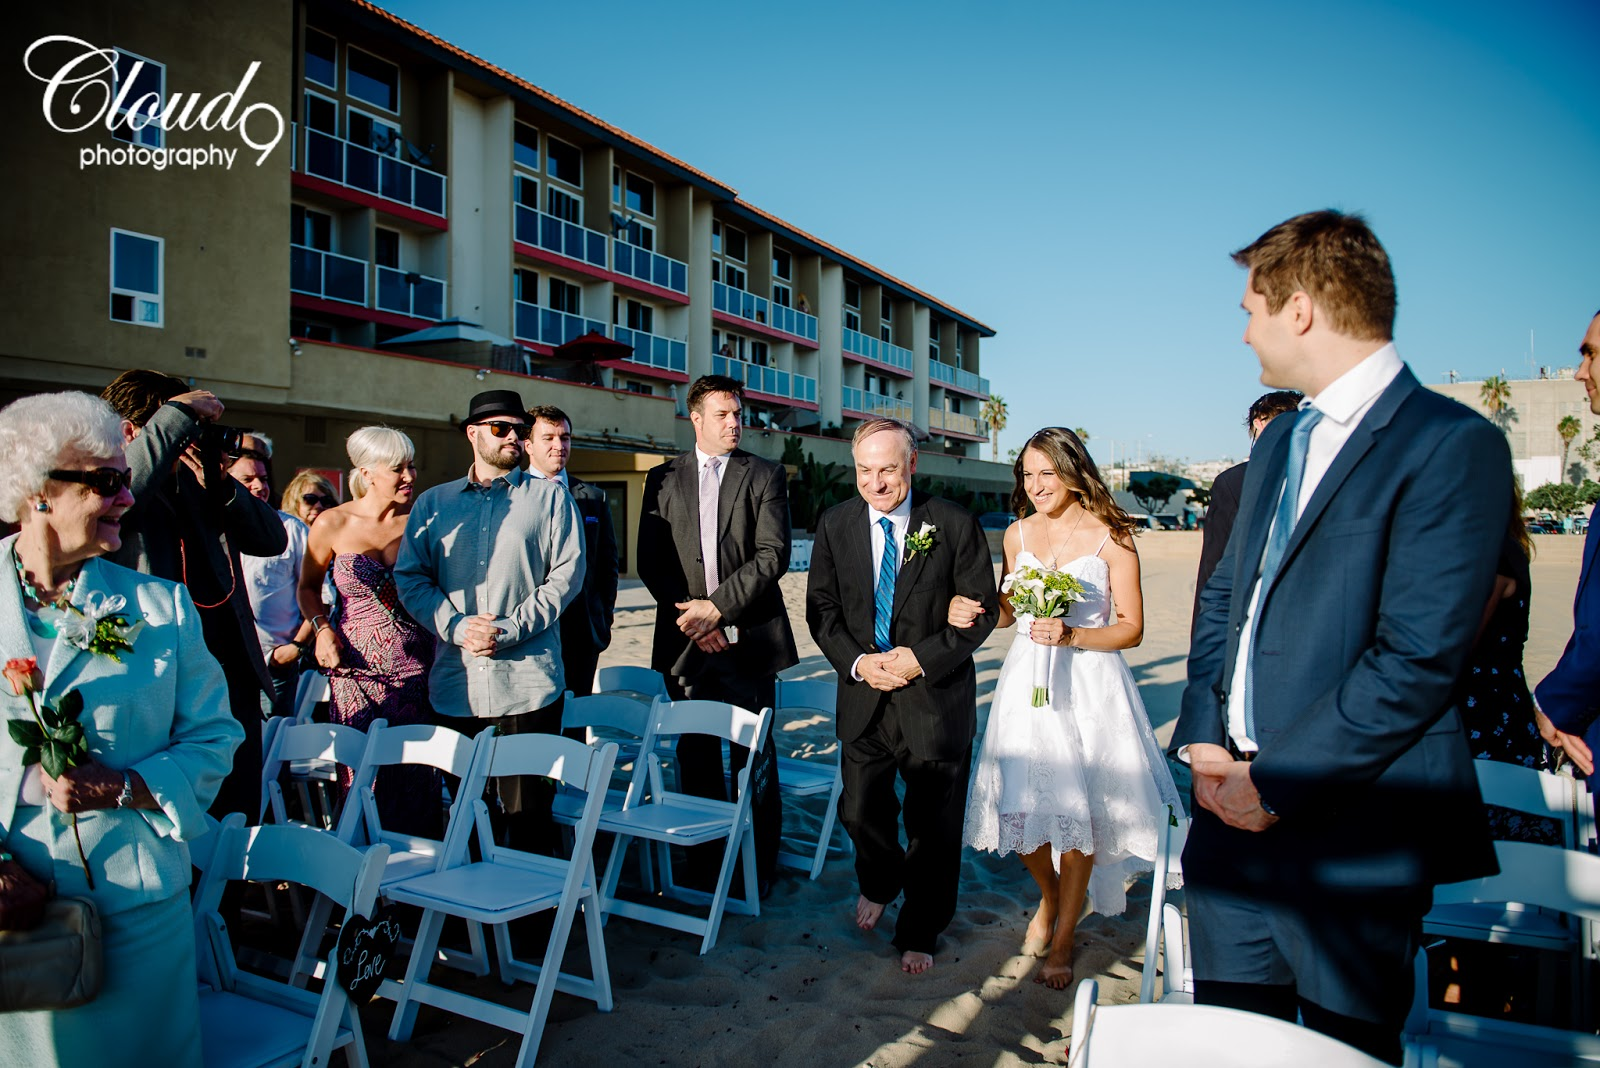 Christina + Don. Wedding Day at Charthouse, Redondo Beach. | Cloud ...